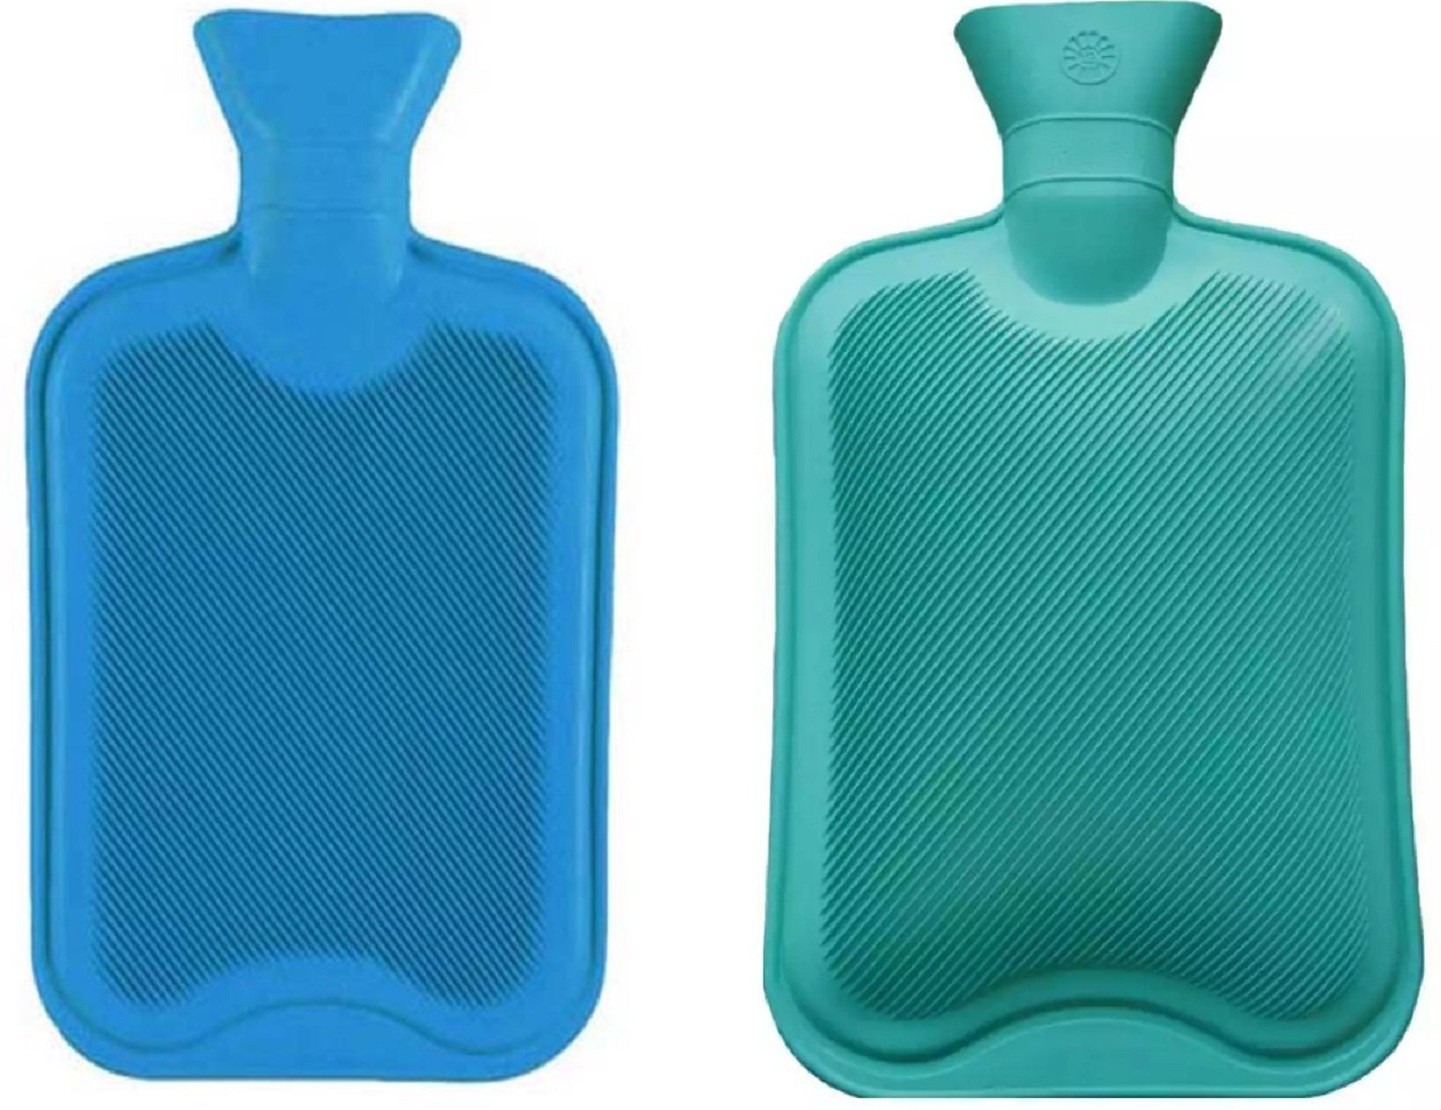 Ramco Comfort Pain Combo Non-electrical 3 L Hot Water Bag(Blue, Green)